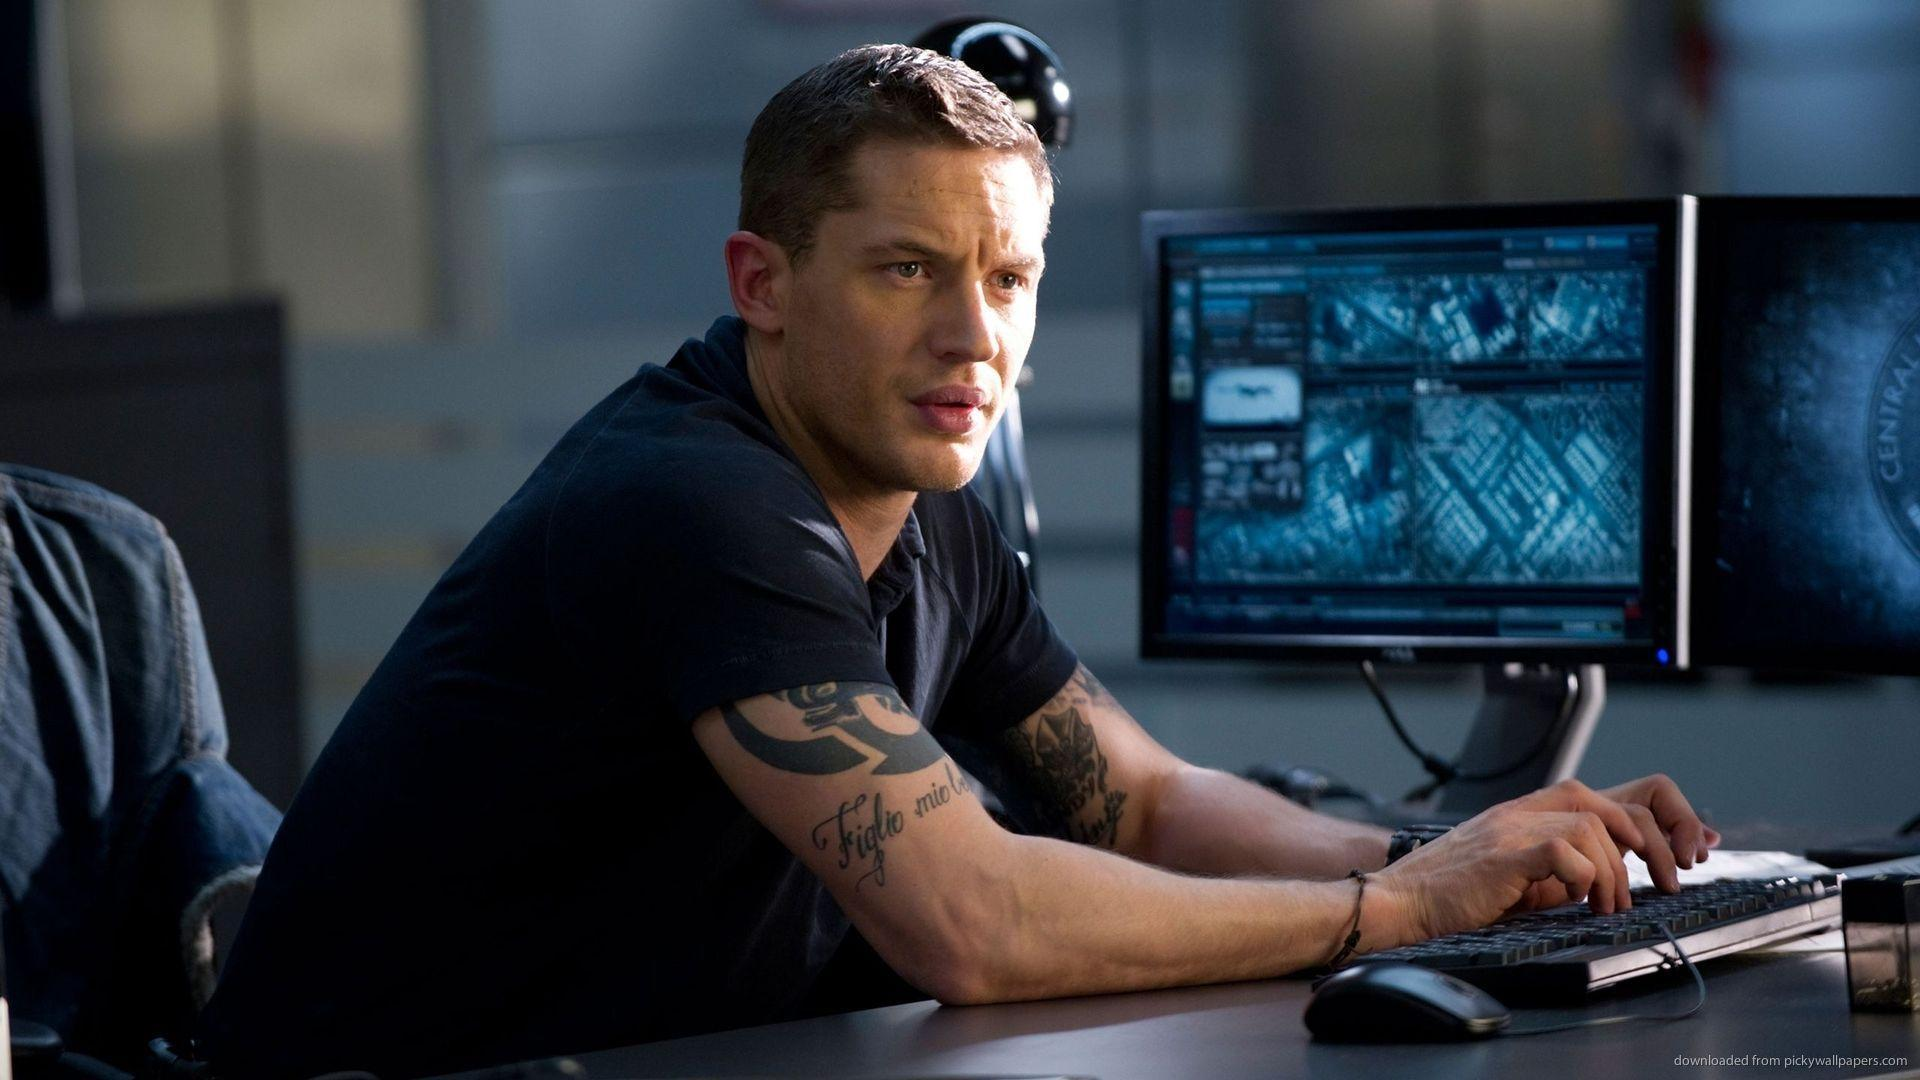 Download 1920x1080 Tom Hardy In THis Means War Wallpaper